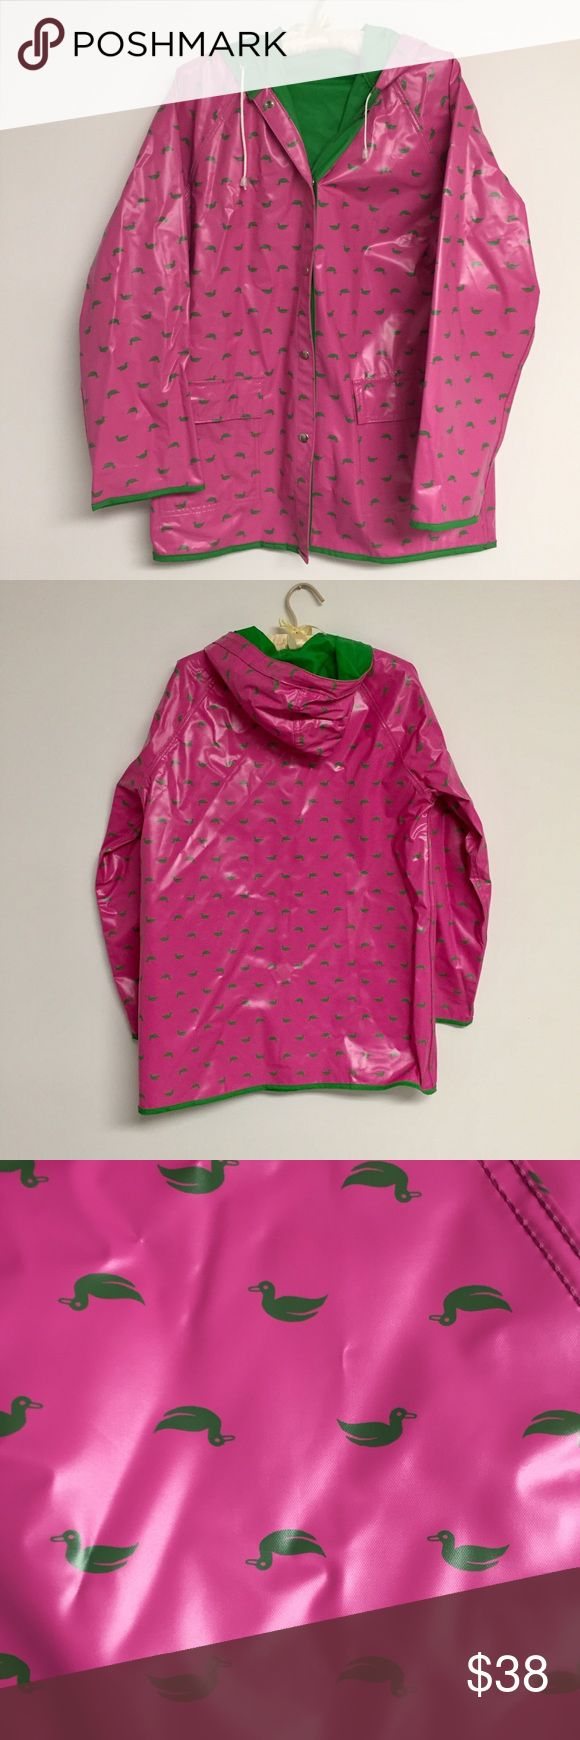 """Vintage 1980s Pink Ducks Hooded Rain Coat Jacket Vintage 1980s Pink Green Ducks Hooded Rain Coat Slicker Jacket size XL Green ducks on a pink background Green interior Snap up  front Full hood with drawstring for adjustment Long sleeves Air vents at the armpits Twin front pockets Hits below the hip About 22"""" across the chest from sleeve to sleeve, 22"""" waist, 31.5"""" top to bottom Pristine condition! Feel free to make me an offer! Jackets & Coats"""